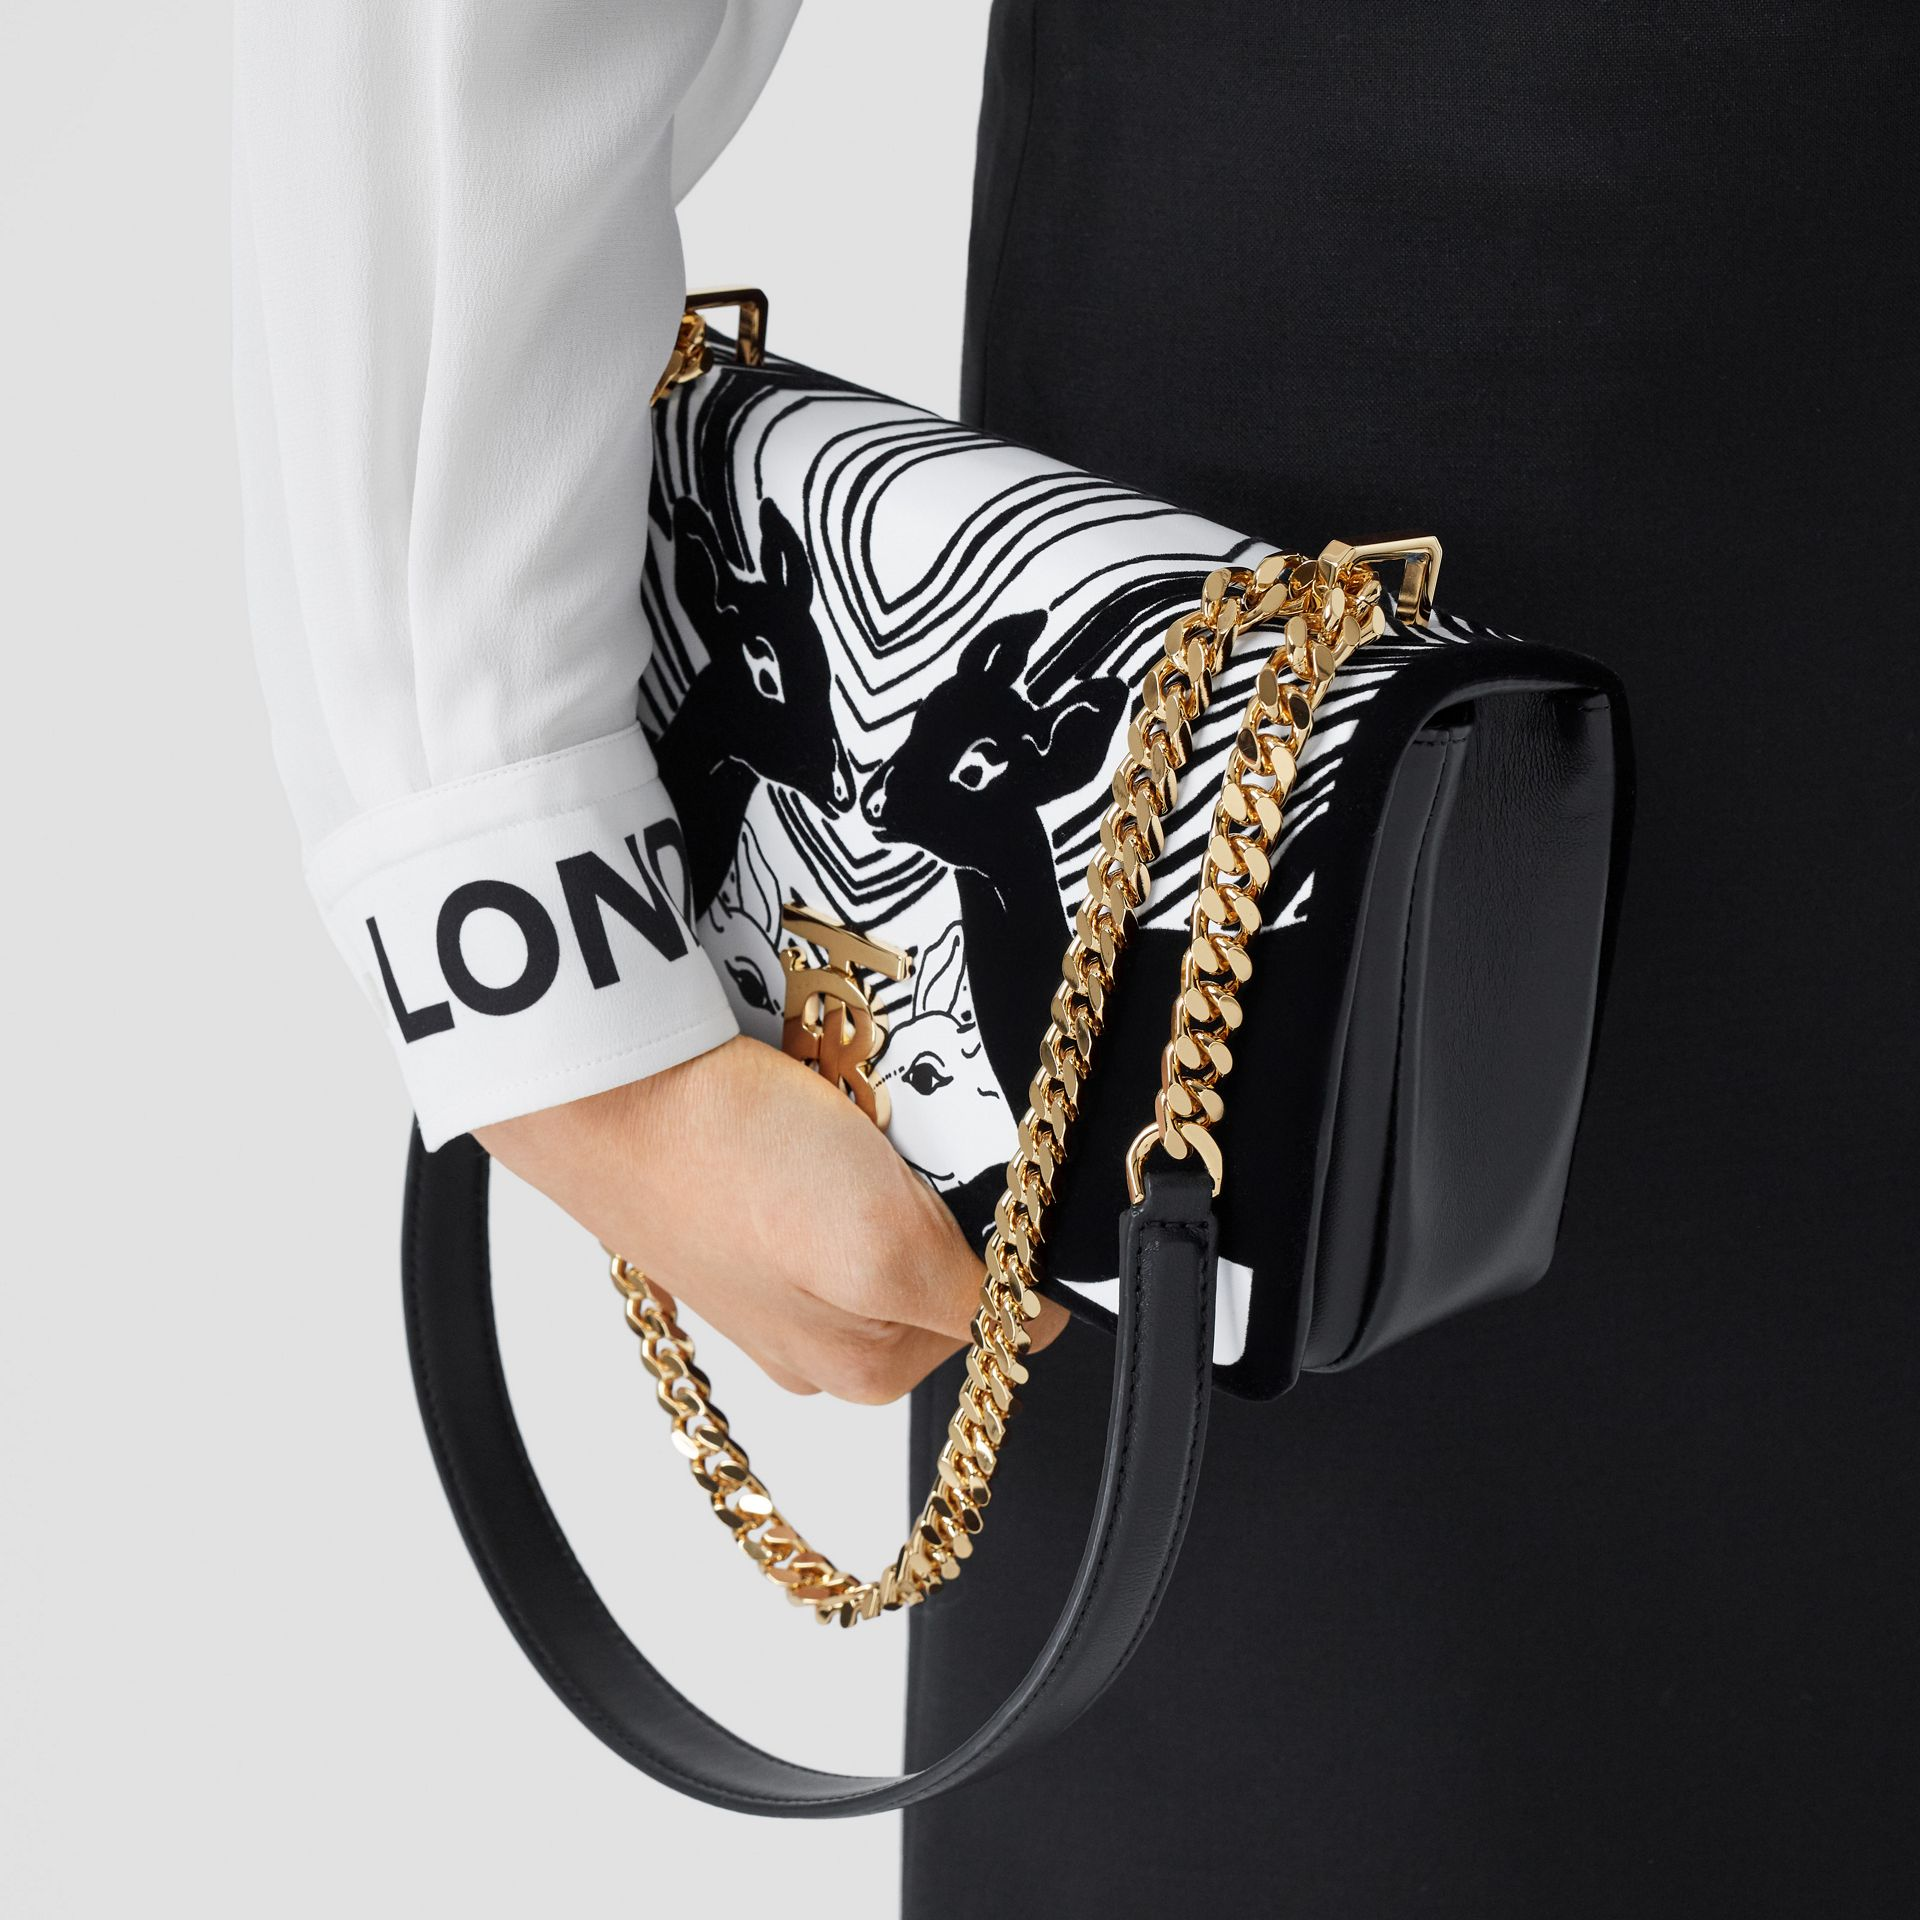 Small Deer Flock Leather Lola Bag in Black/white - Women | Burberry - gallery image 8